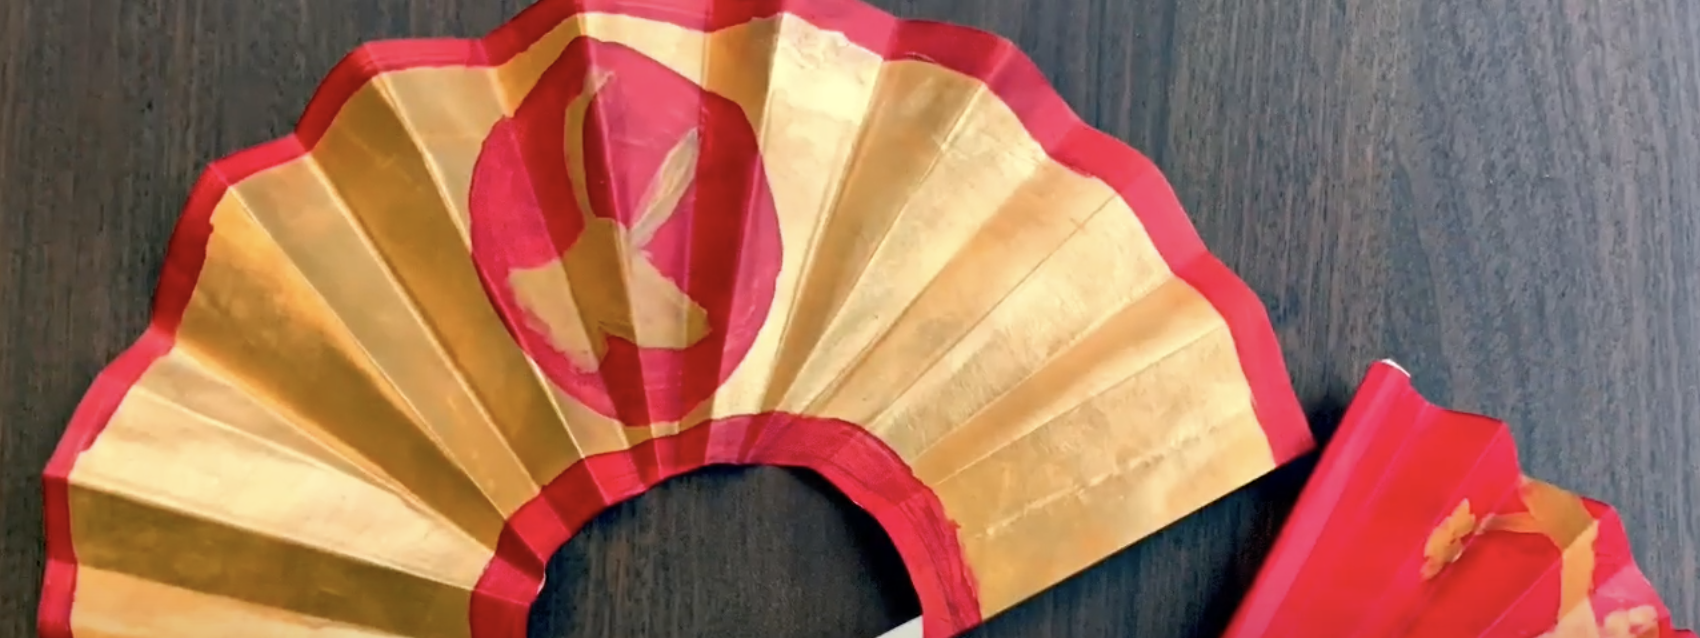 Make Your Own Fan for Lunar New Year